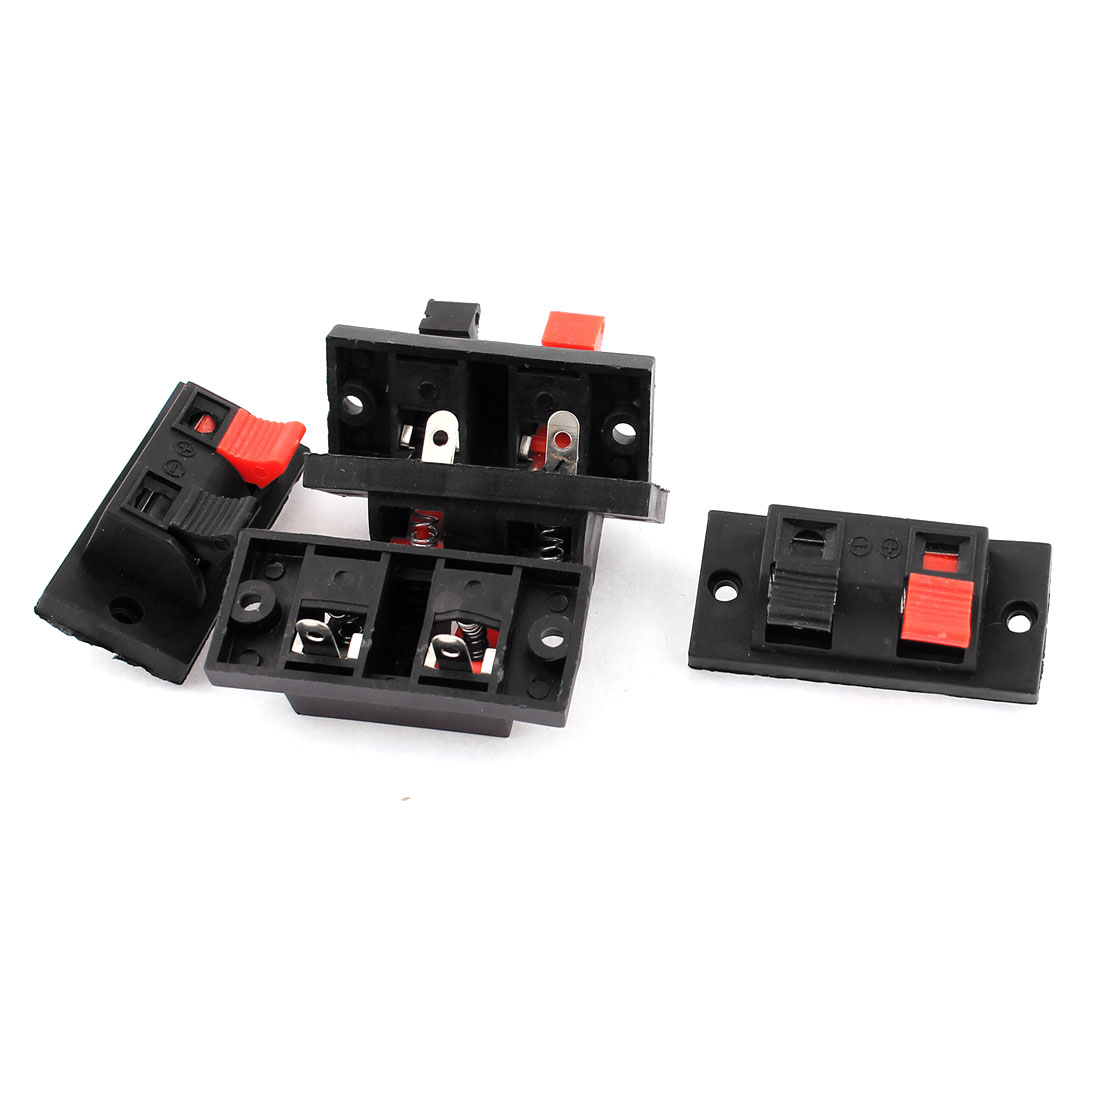 4 Way Speaker Terminal Push Release Connector Plate Amplifier Strip Block